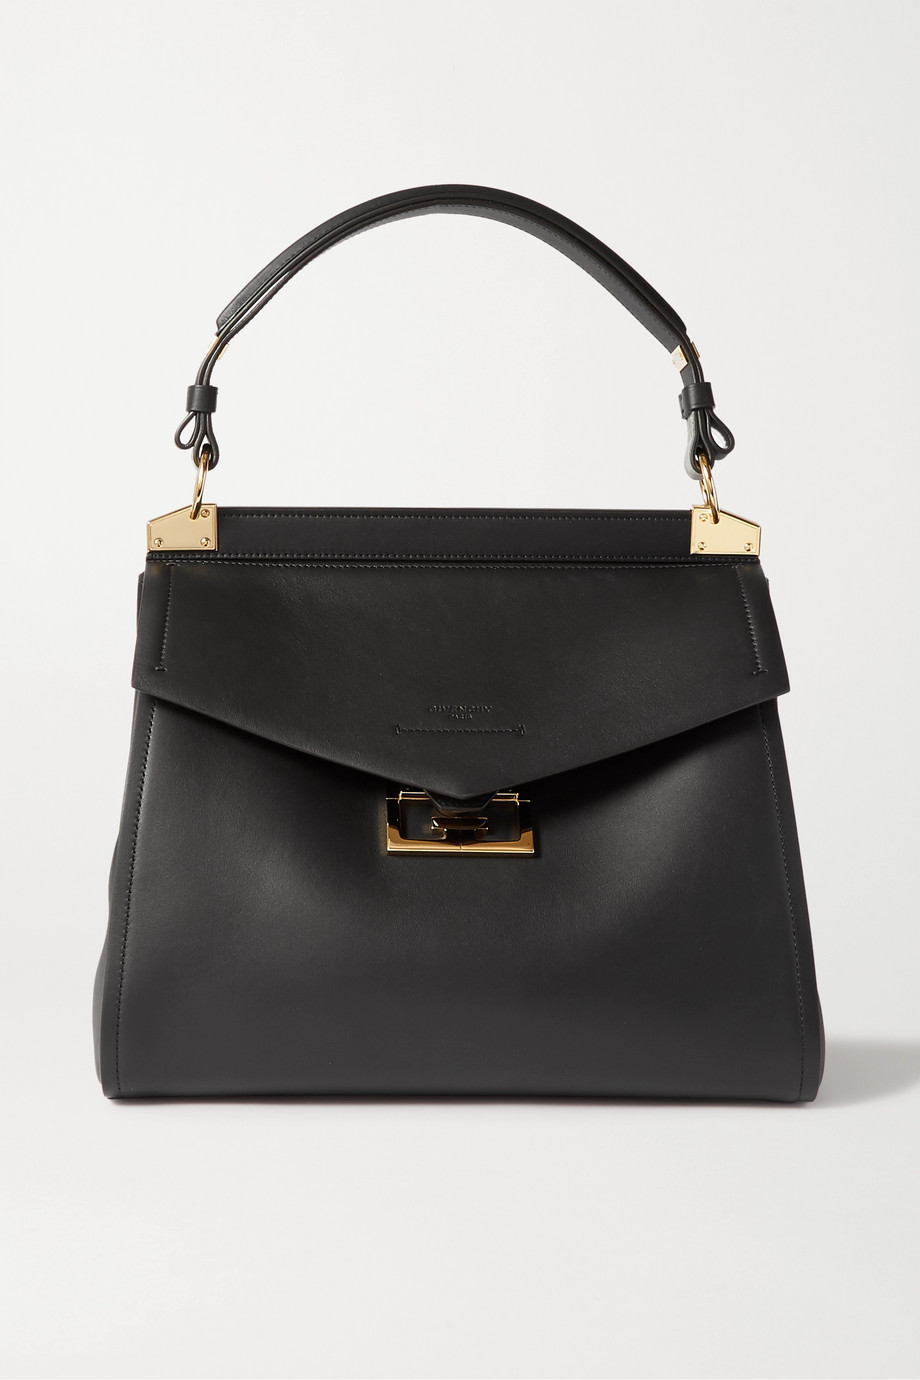 Givenchy Sac à main en cuir Mystic Medium